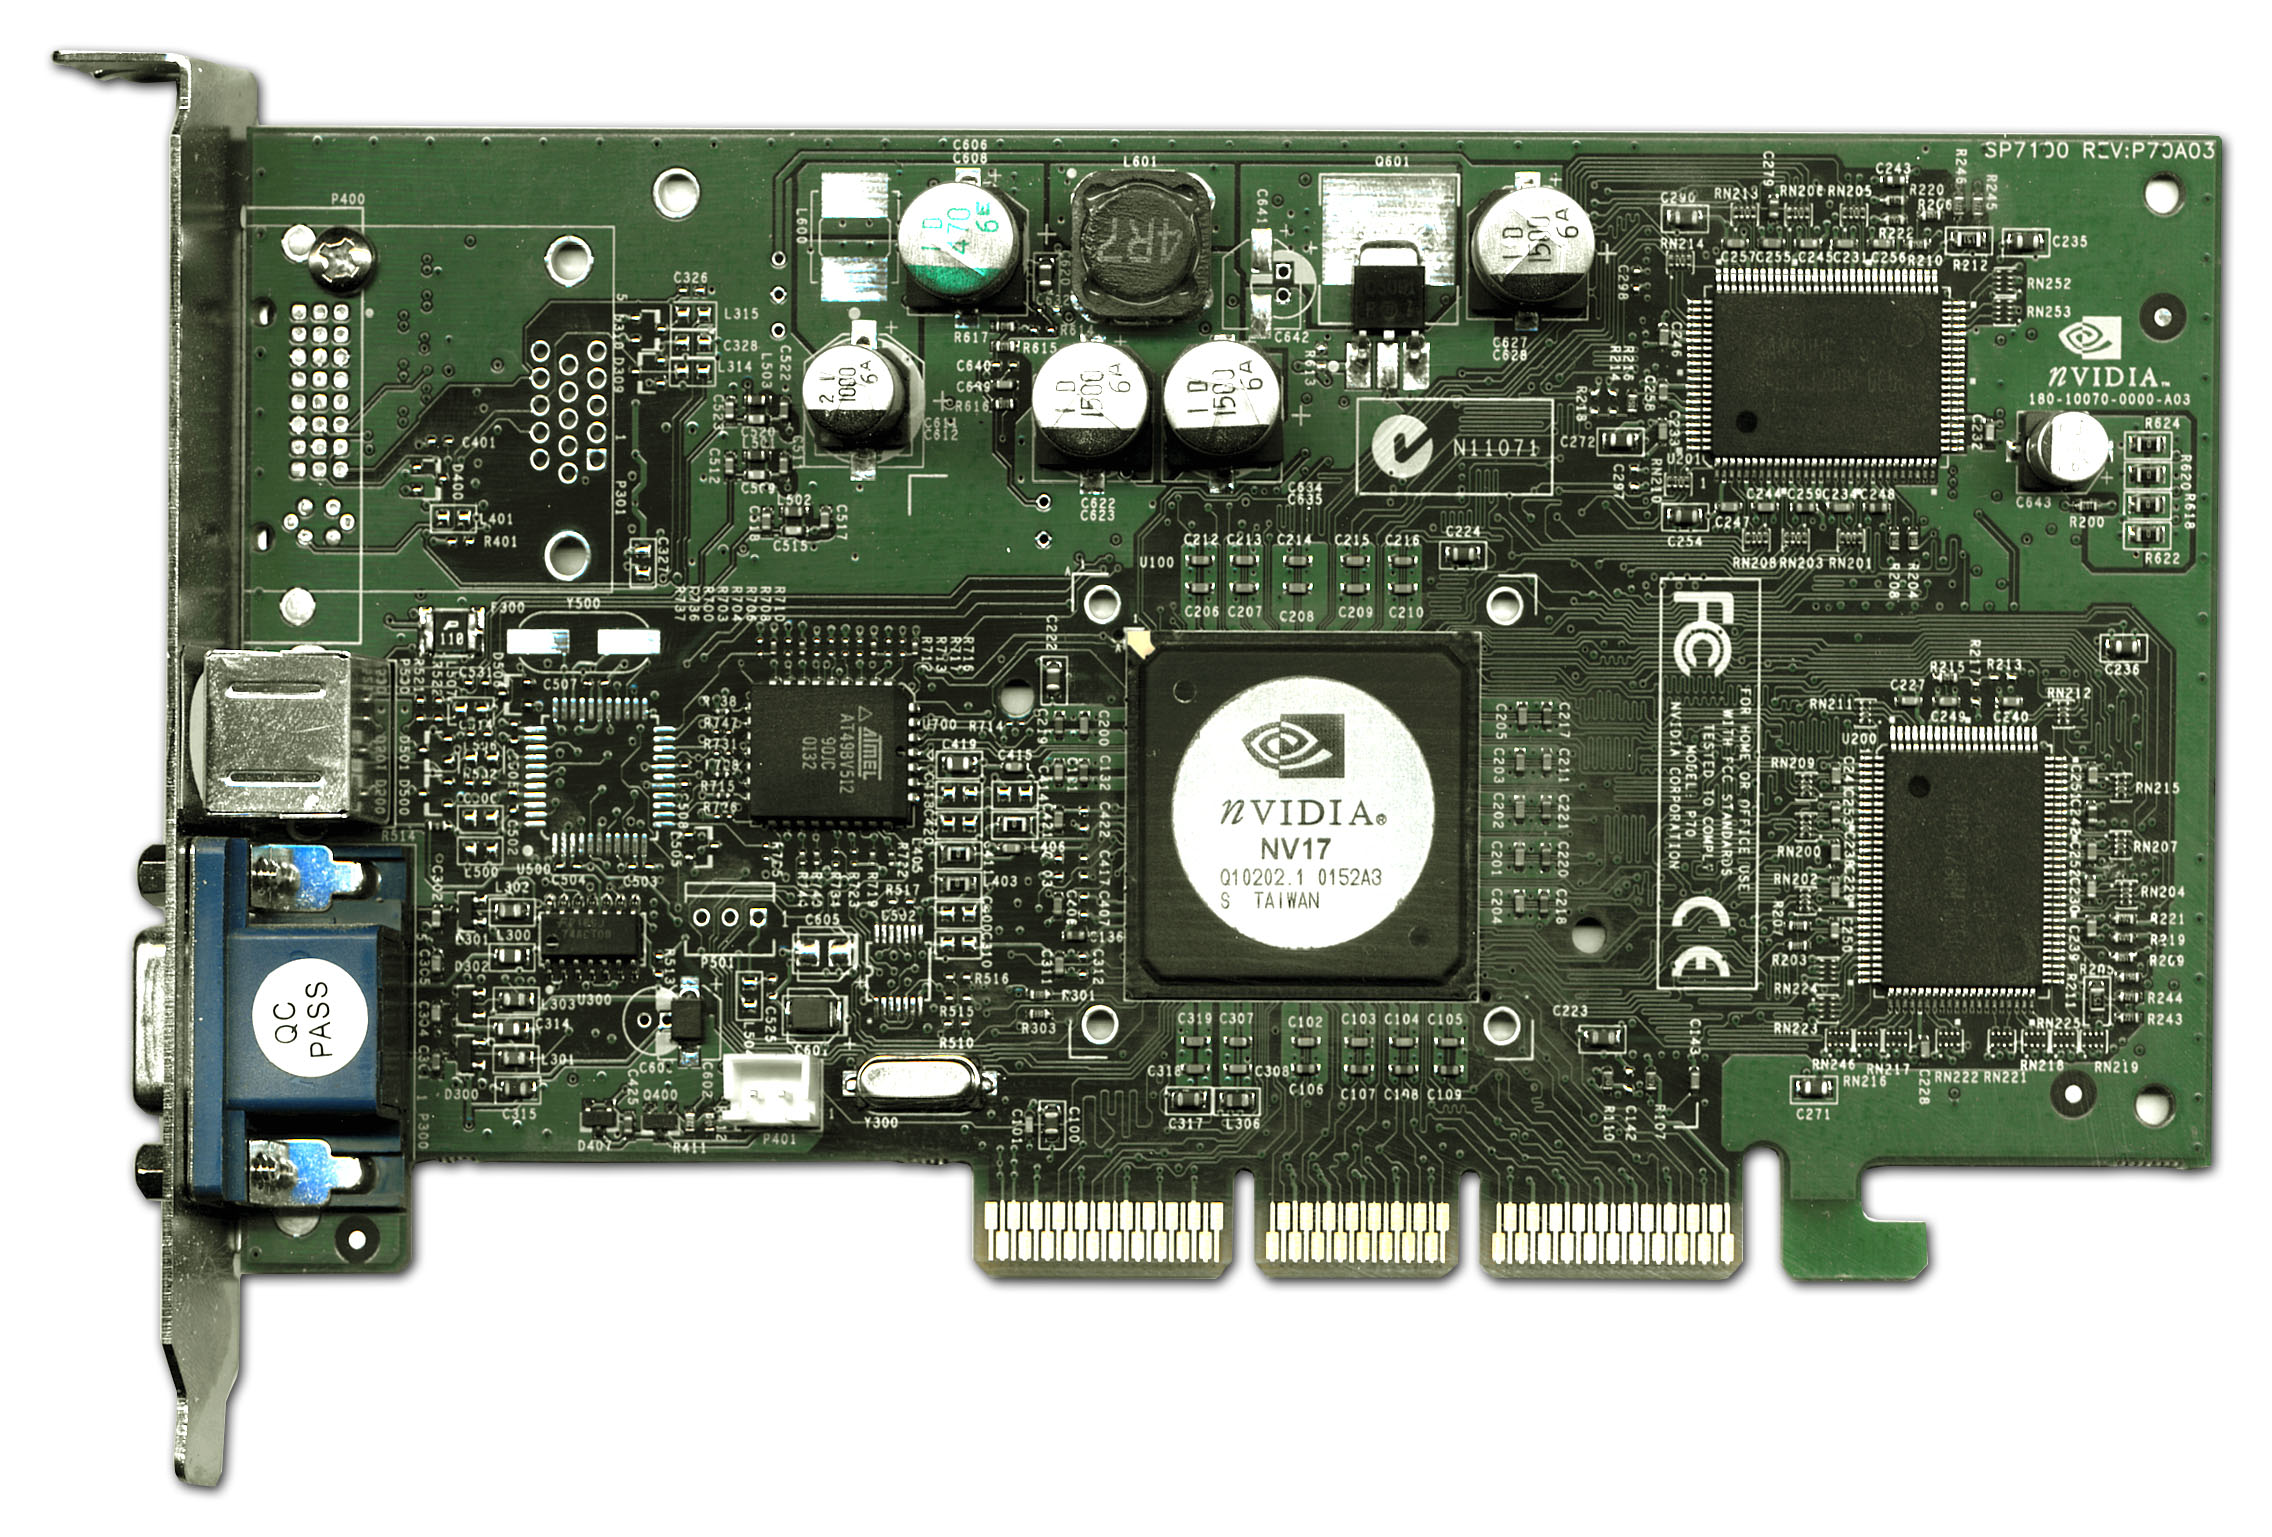 NVIDIA GEFORCE4 MX SE WITH AGP8X DRIVERS FOR MAC